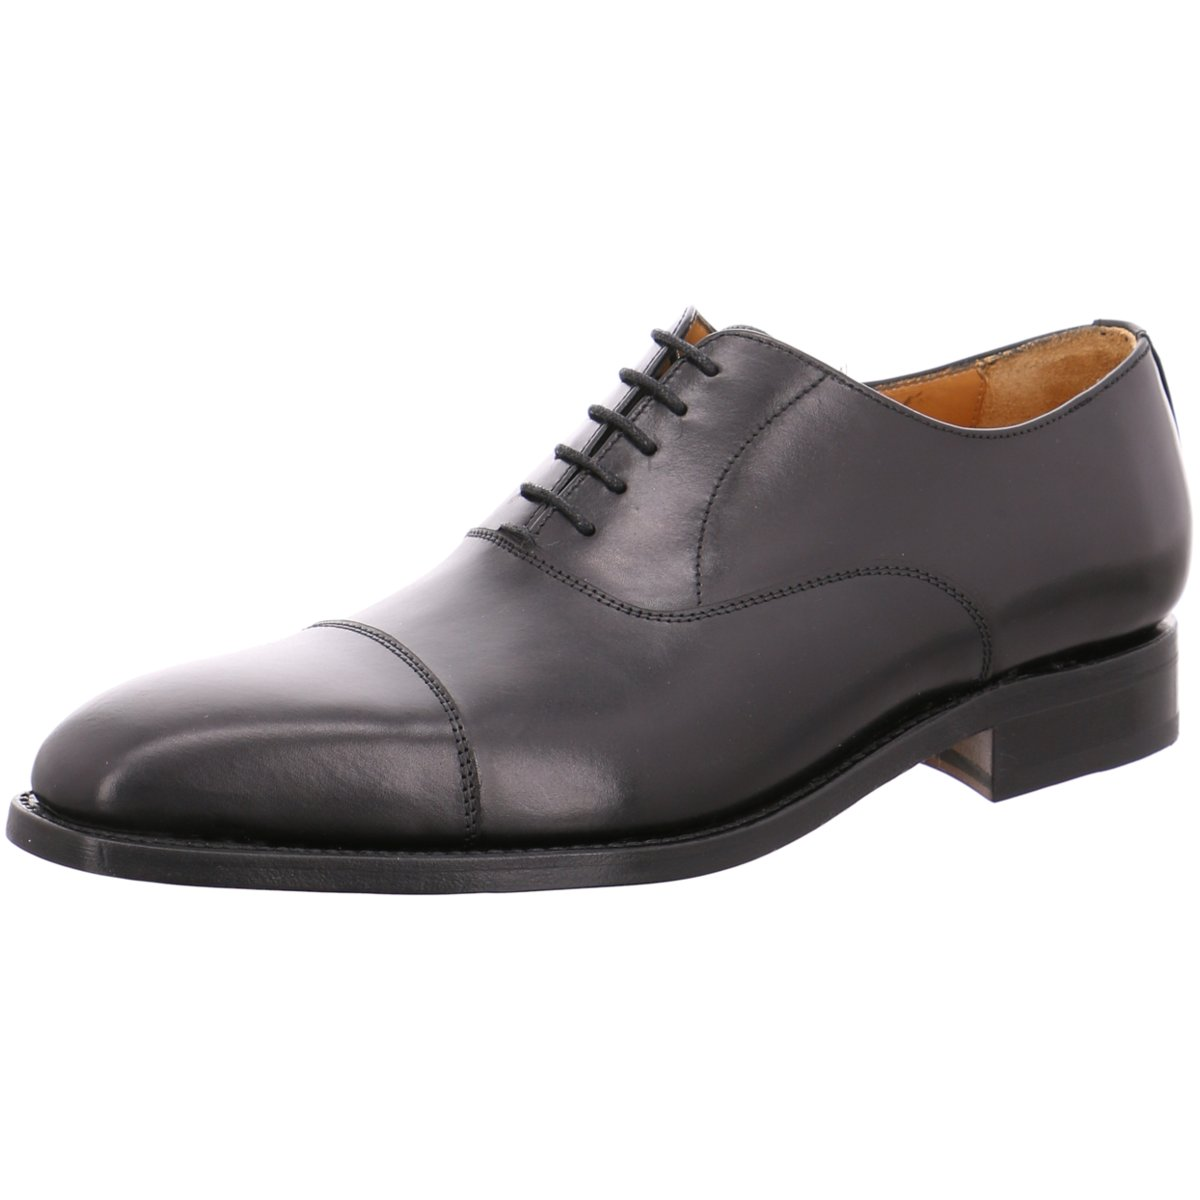 NEU Berwick 1707 Herren Must-Haves 2428 129 NERO BOXCALF schwarz 240894